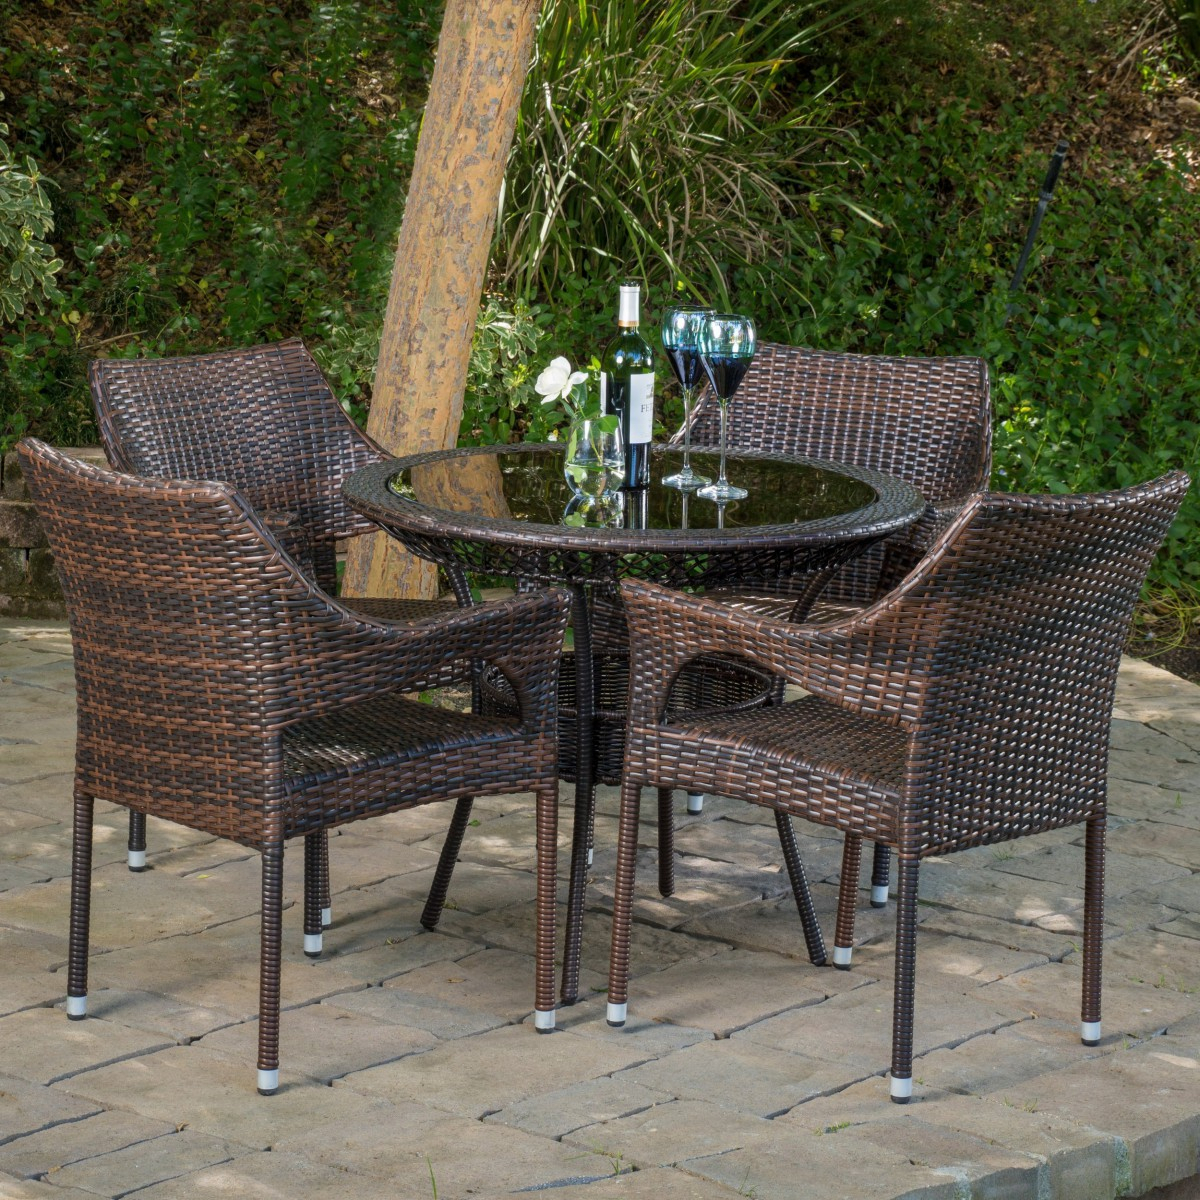 Most Recent Del Mar Wicker 5 Piece Outdoor Dining Set With 34quot Round With Delmar 5 Piece Dining Sets (View 14 of 20)